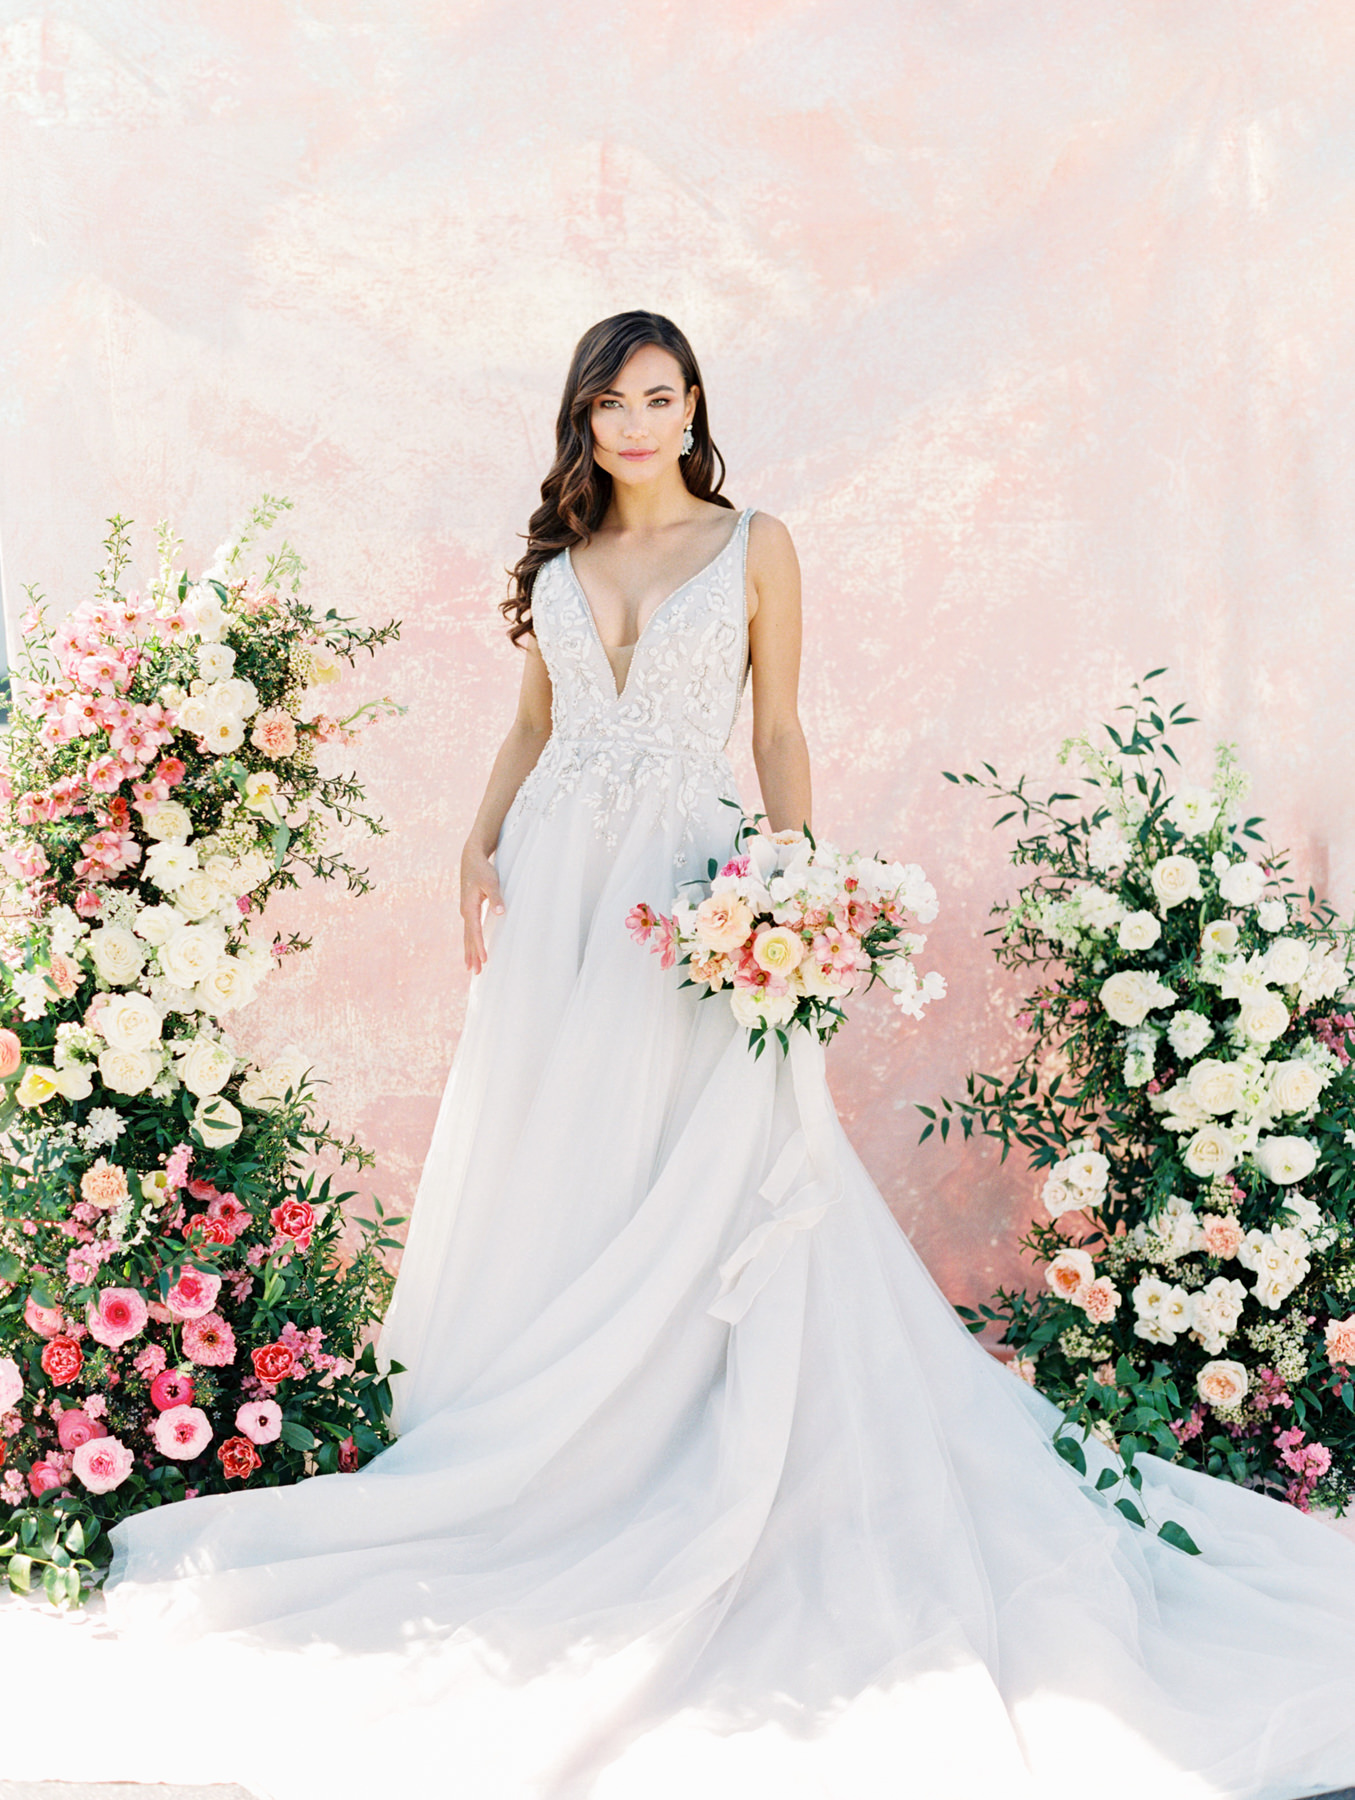 Asymmetrical floral arrangement with pink and ivory roses, sweet peas, ranunculus, carnations, and greenery with a pink painterly backdrop. Bridal bouquet with ivory, pink, peach, carnations, roses, ranunculus, sweet peas, and greenery. Haiku beaded and embroidered A-line gown, plunging V-neckline with illusion net insert and side cut outs, low scoop back and rhinestone trim, full skirt with layered starlight sparkle tulle. Hayley Paige Lauren gown from The White Flower. Cavin Elizabeth Photography - film photographer in San Diego.